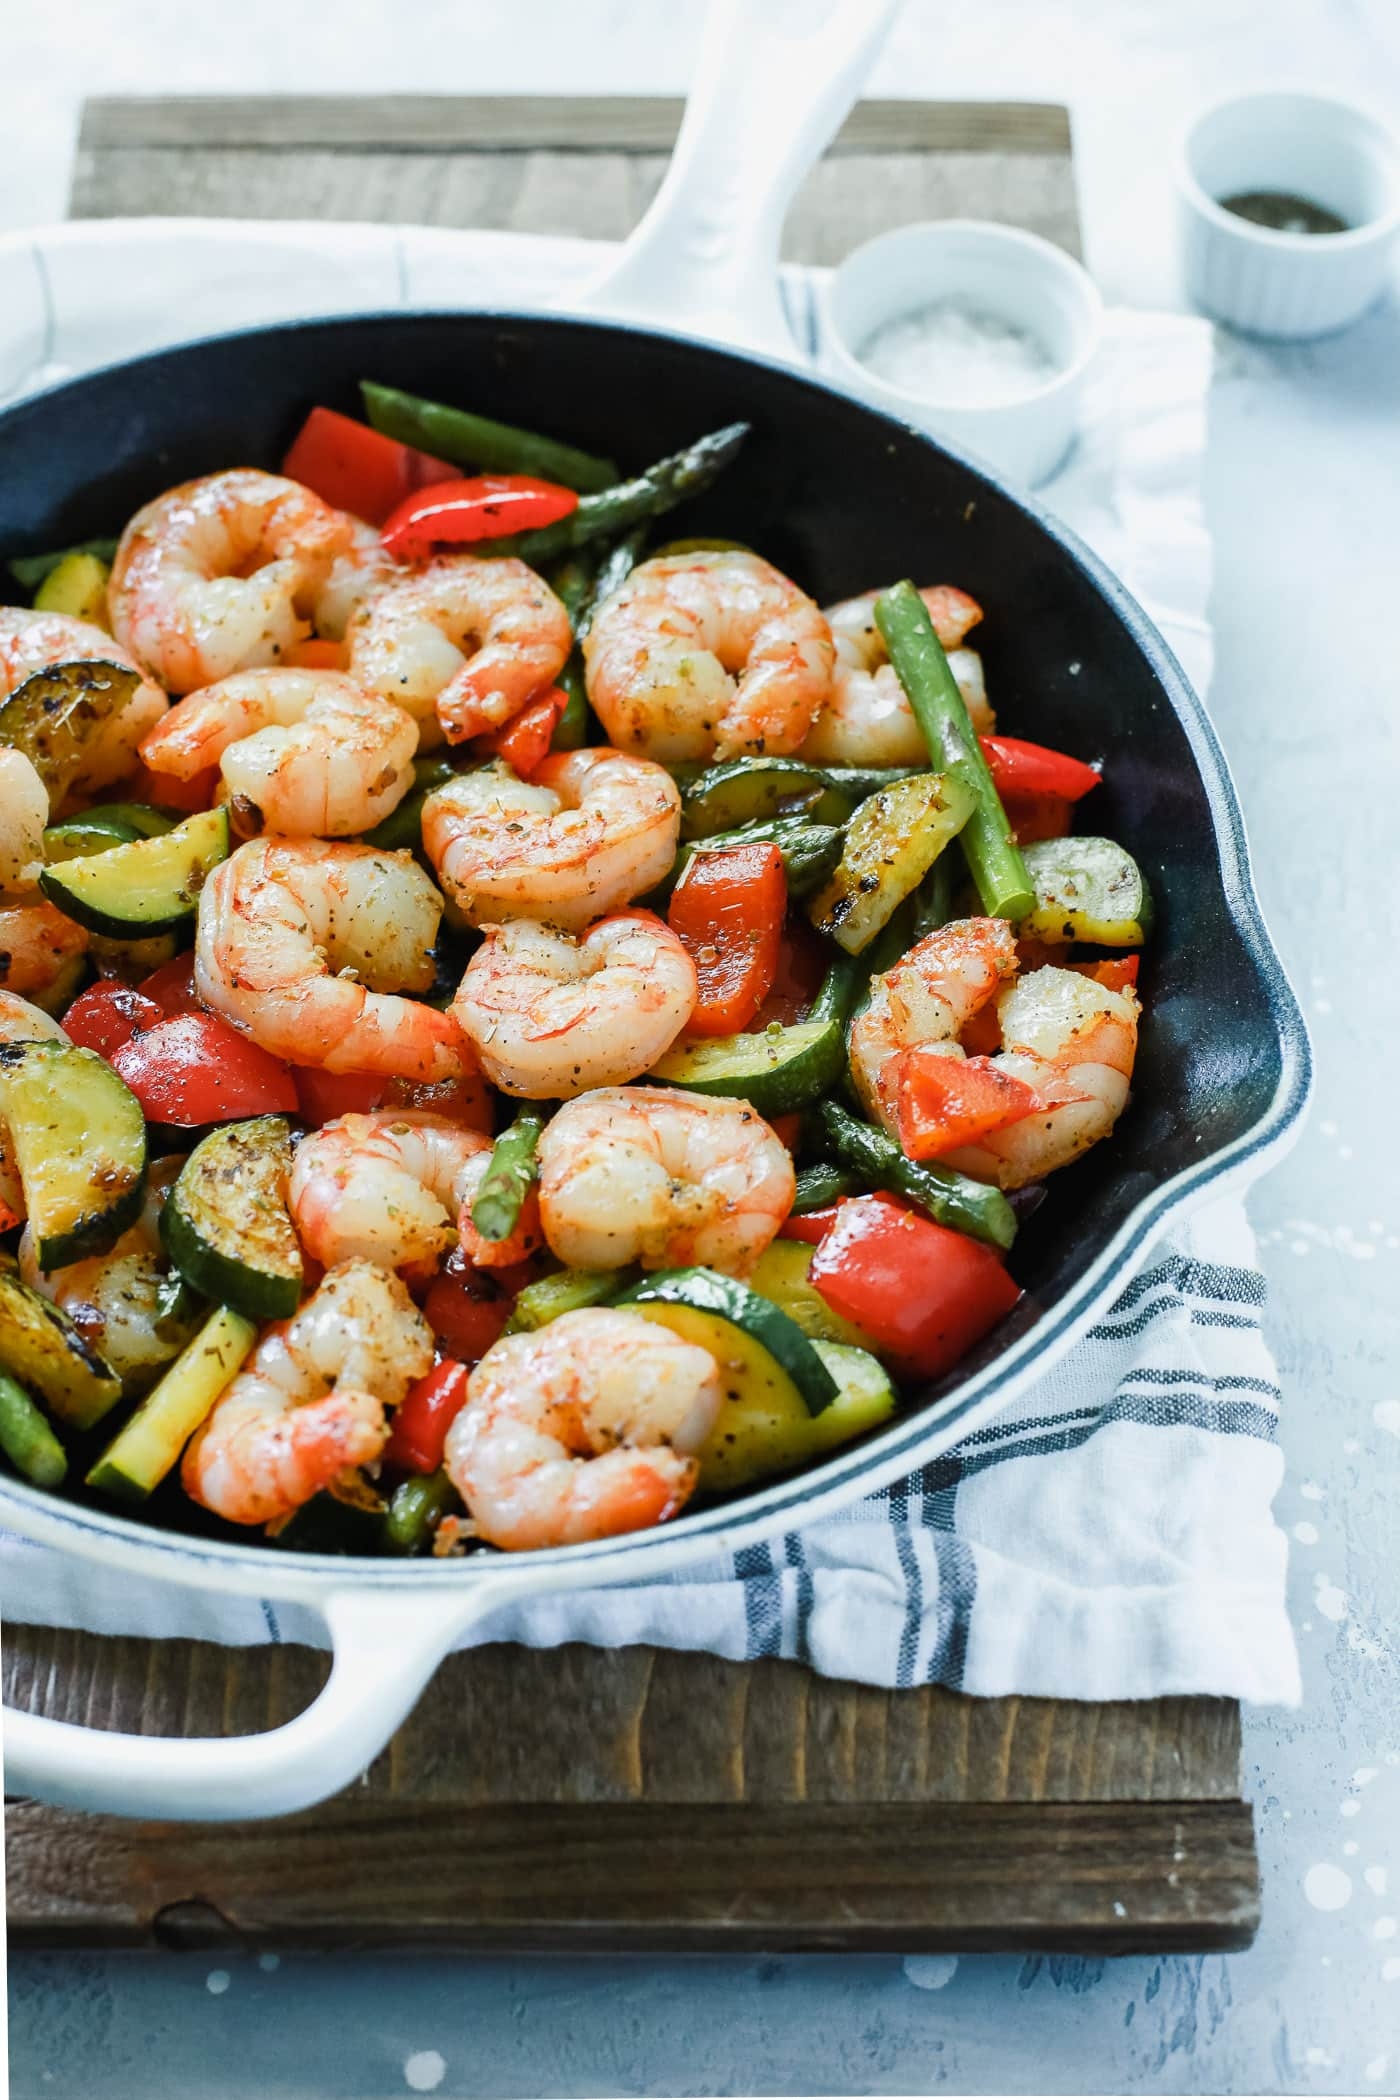 A white cast iron with shrimp and vegetables inside.